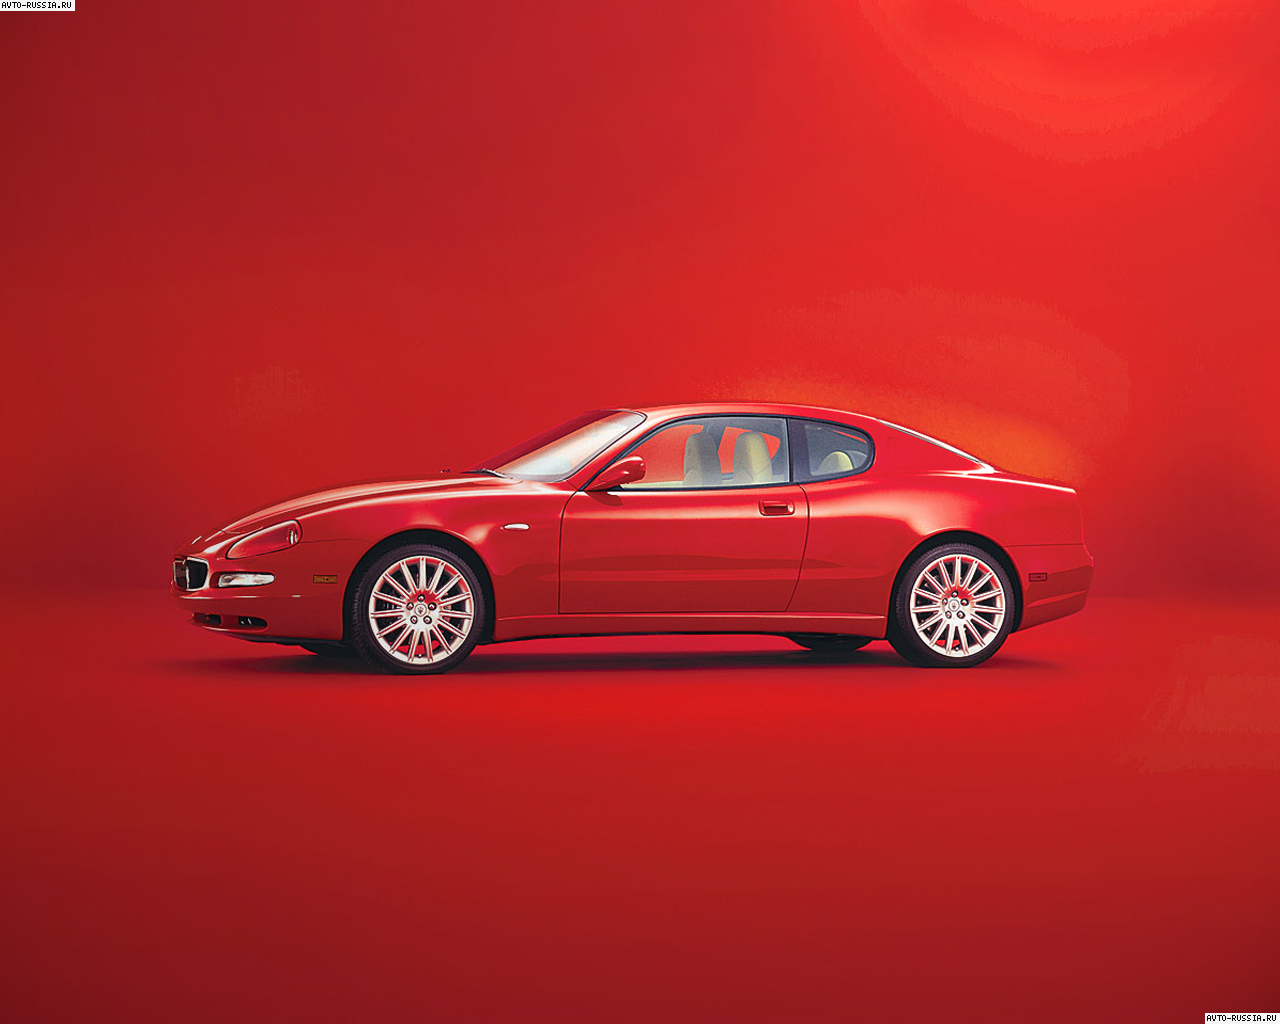 2002 Maserati 4300 gt coupe - pictures, information and ...